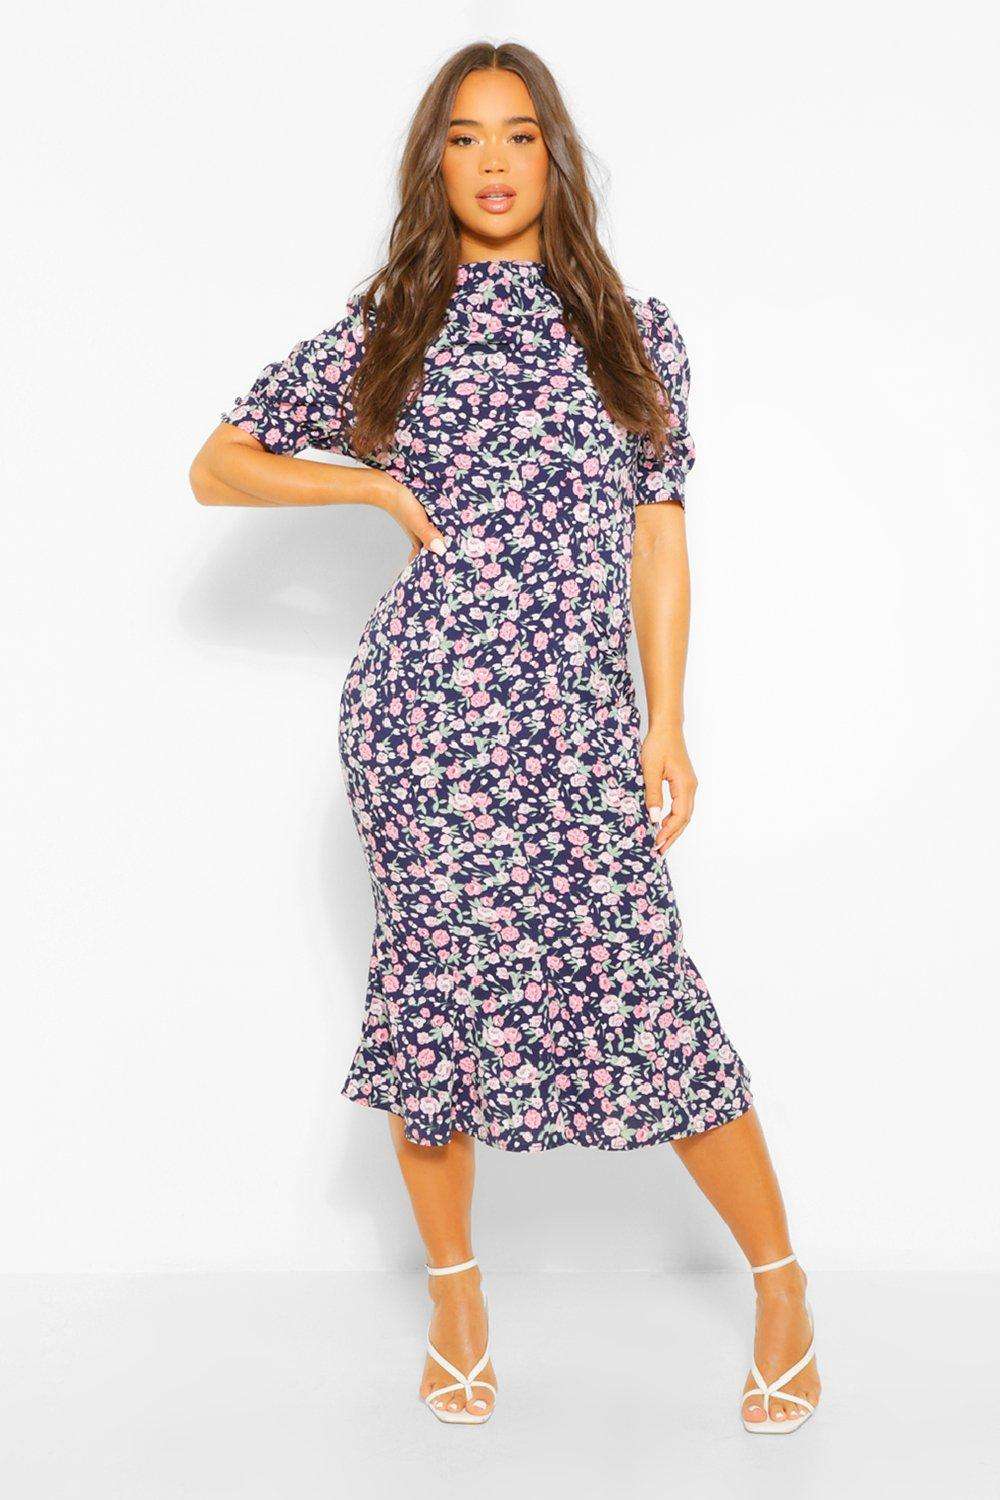 1930s Style Clothing and Fashion Womens Floral Draped Puff Sleeve Midaxi Dress - Navy - 14 $18.00 AT vintagedancer.com